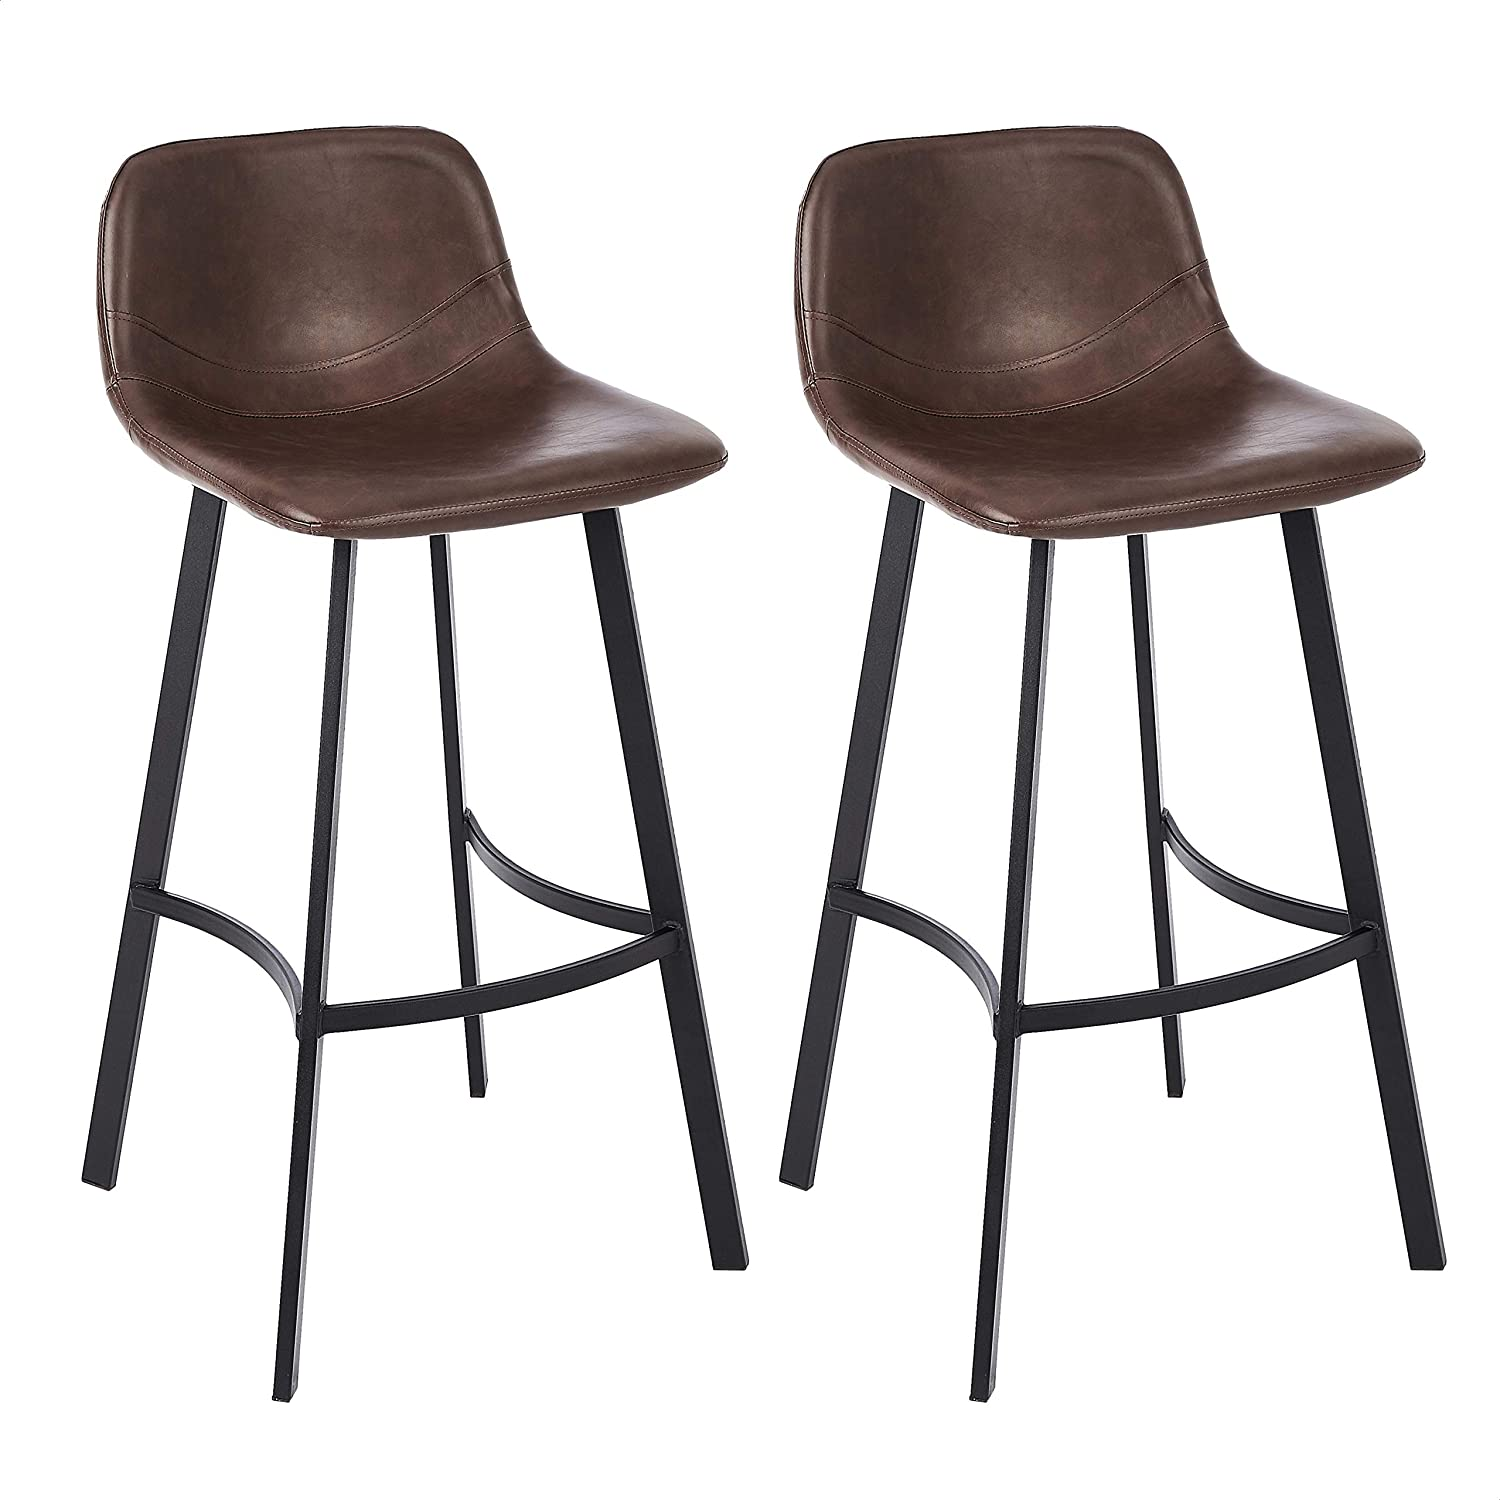 Brown Set of 2 CangLong Faux Leather Height Chair Armless Indoor Kitchen Barstool with Metal Legs Upholstered